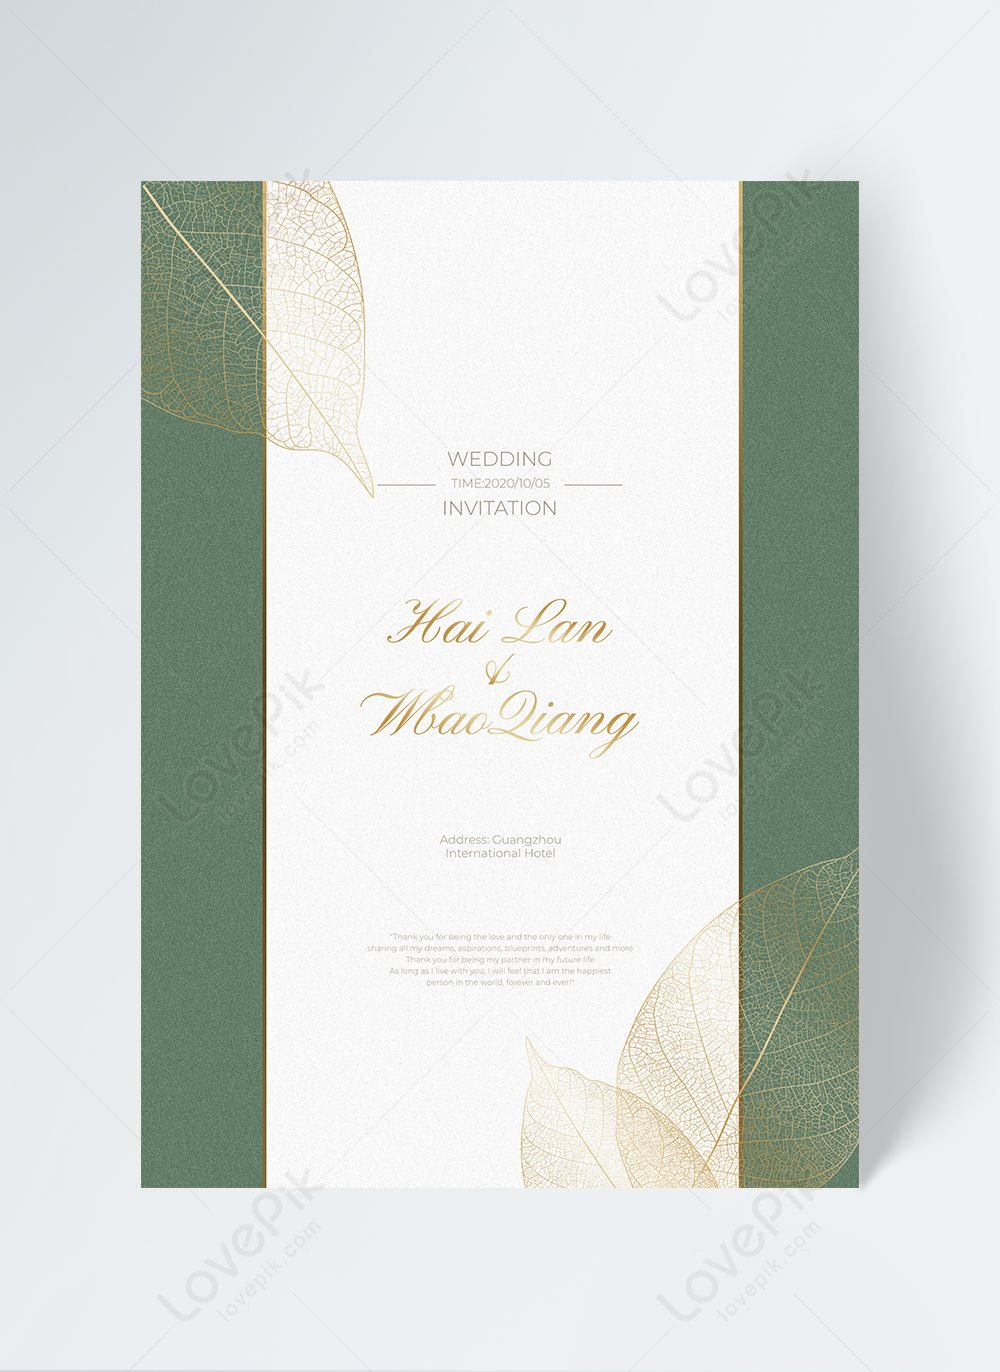 Golden Leaves Wedding Invitation Design Template Image Picture Free Download 465521007 Lovepik Com